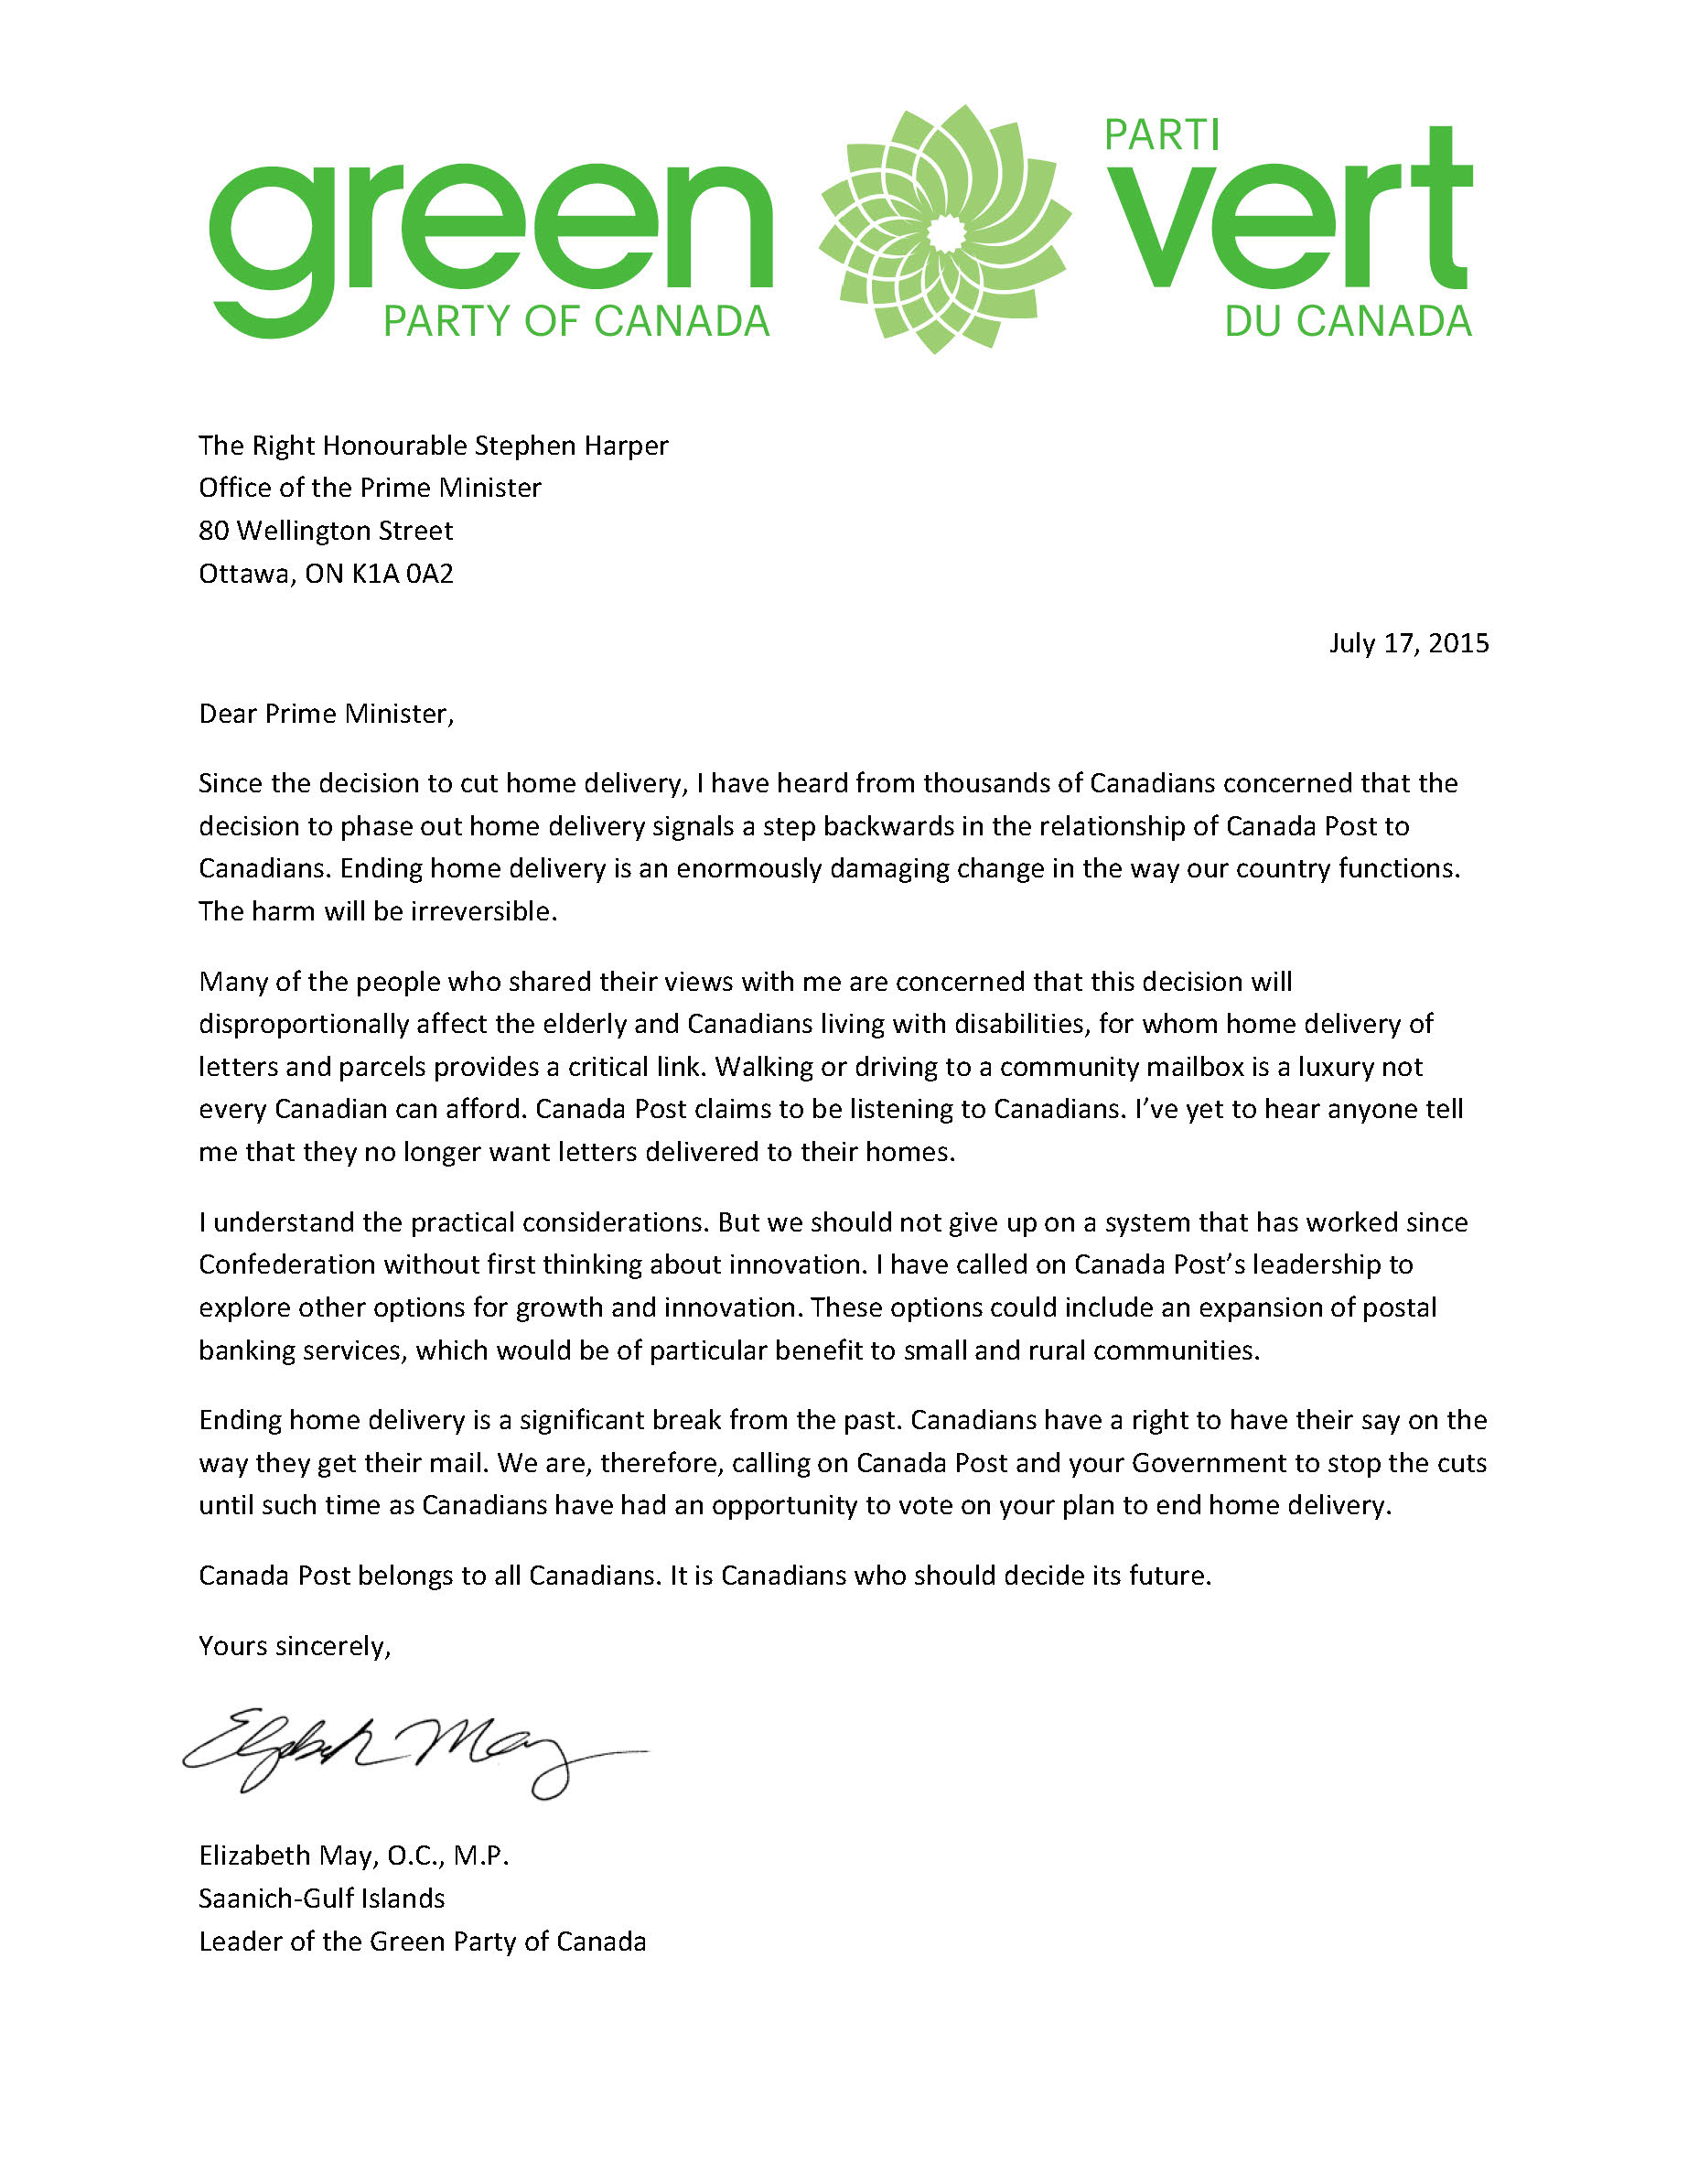 Green Party letter to Prime Minister